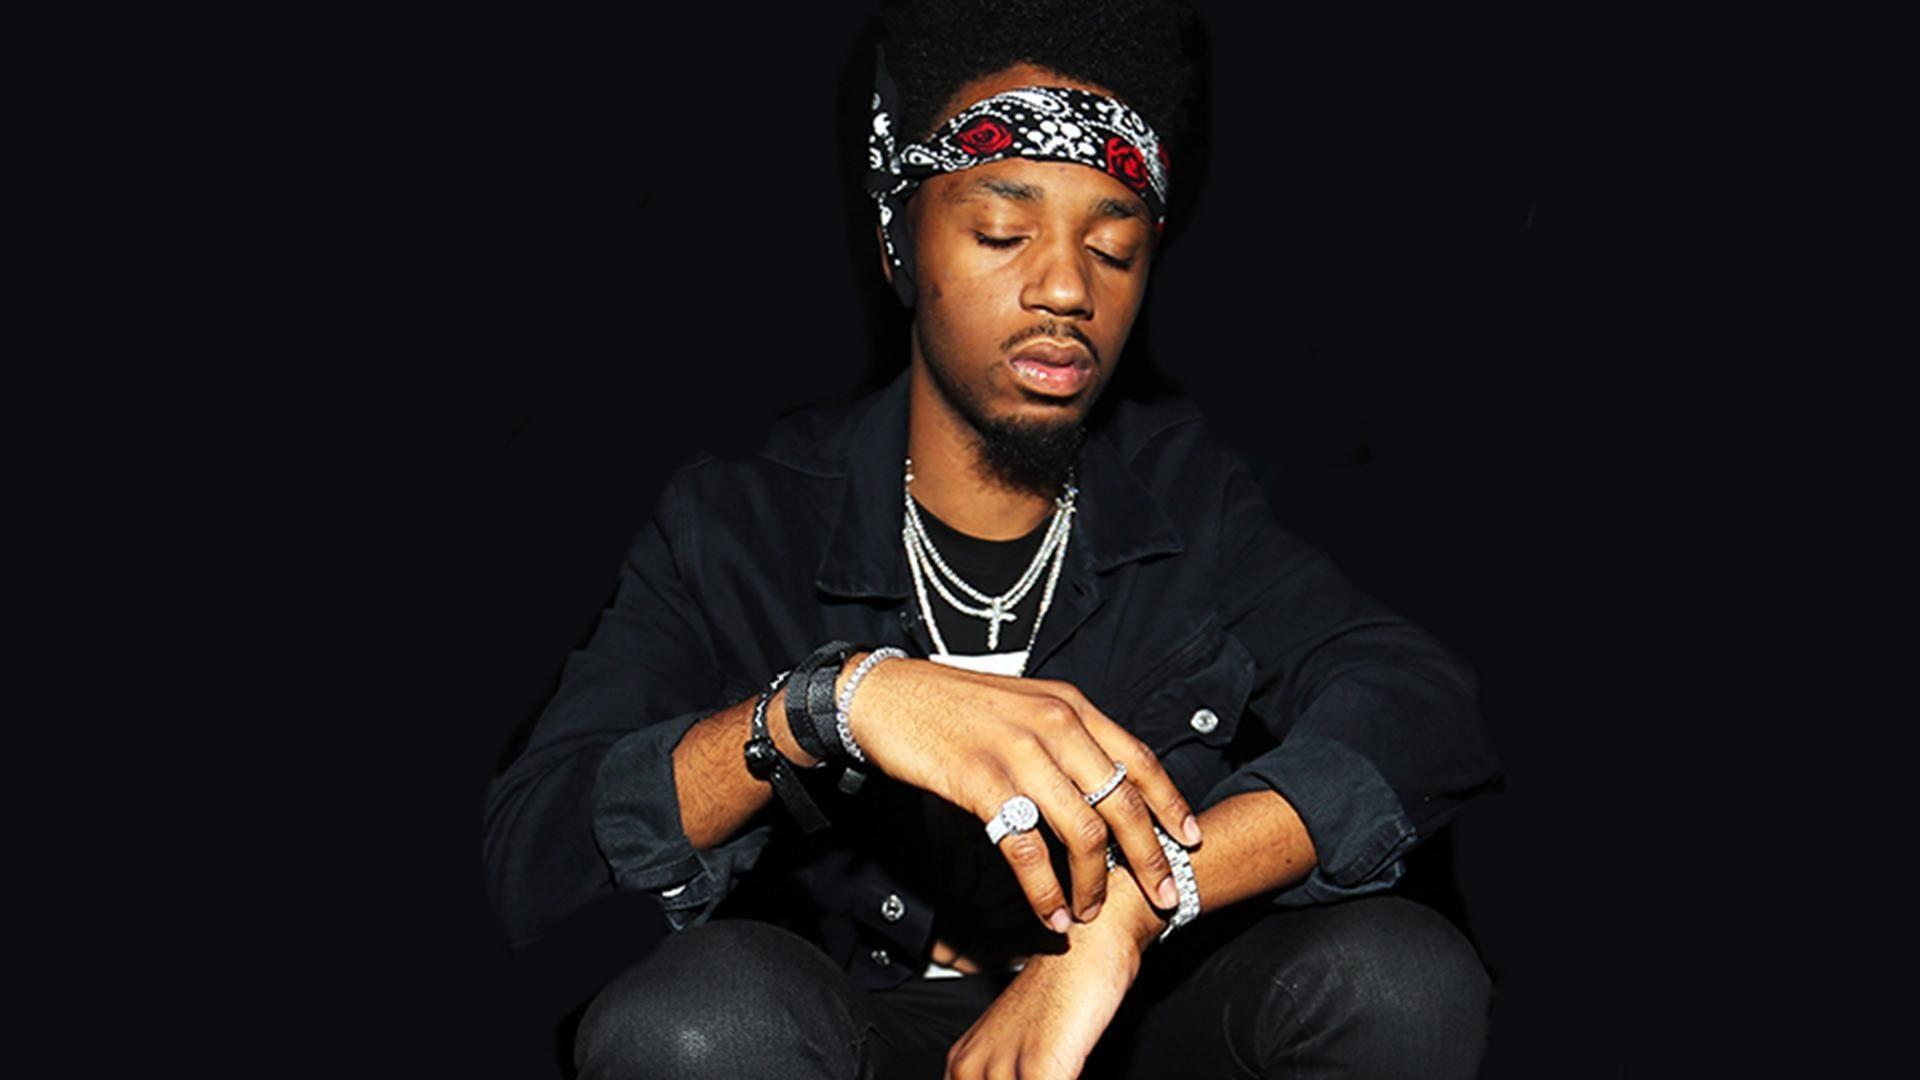 Metro Boomin Wallpapers - Wallpaper Cave